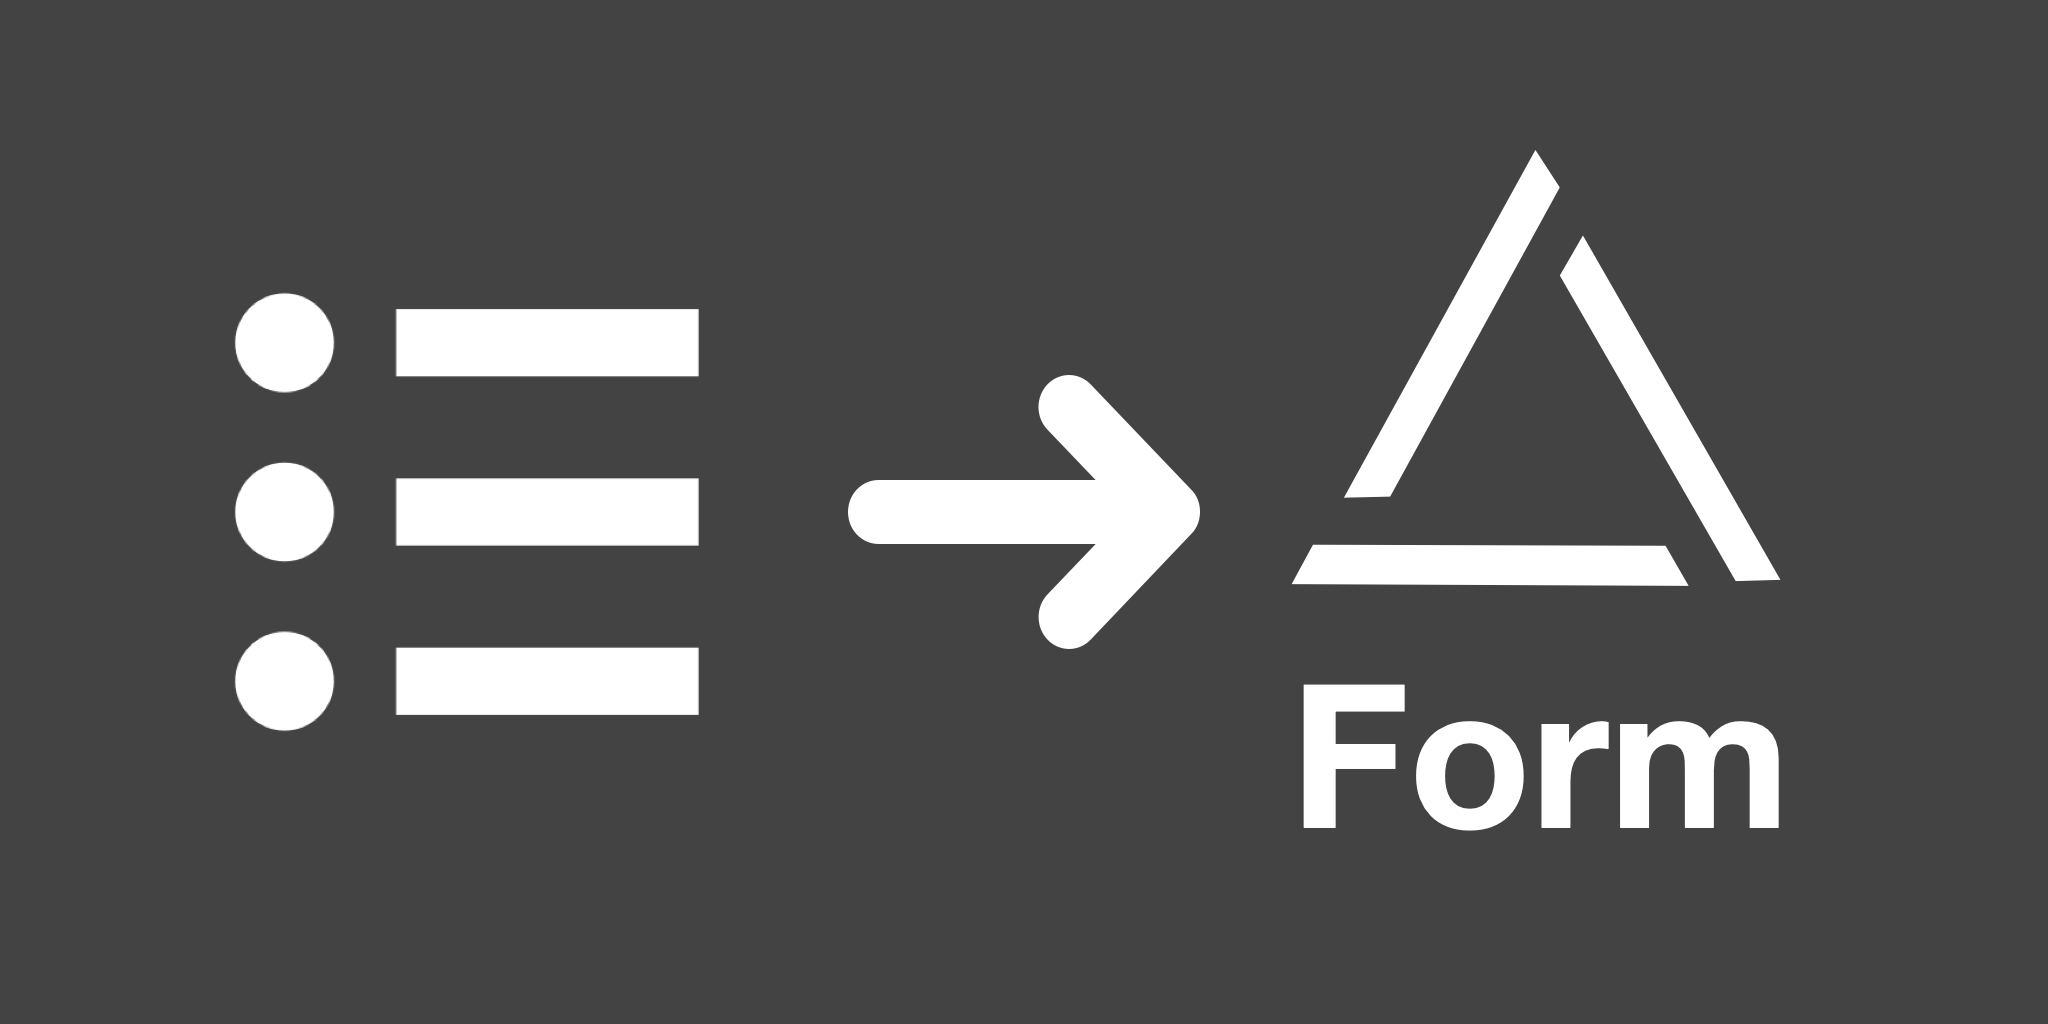 Create Line Items in miniExtensions Form